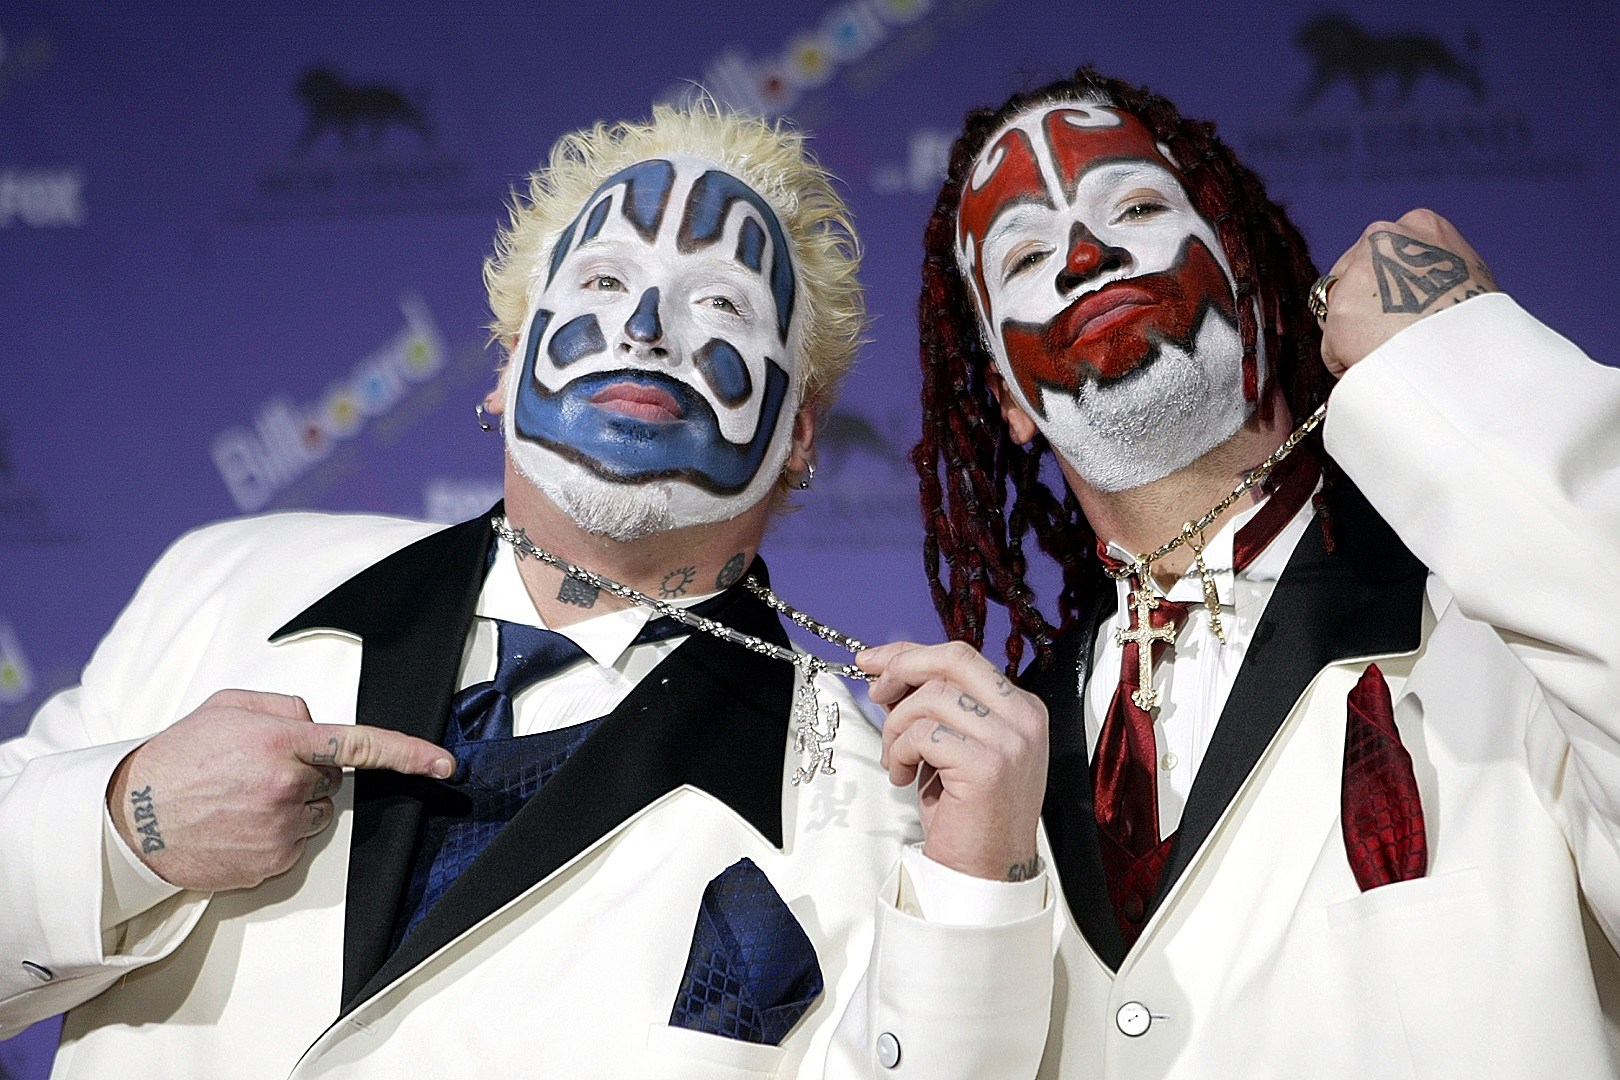 Insane Clown Posse March on Washington D.C. to Coincide with Pro-Trump Rally